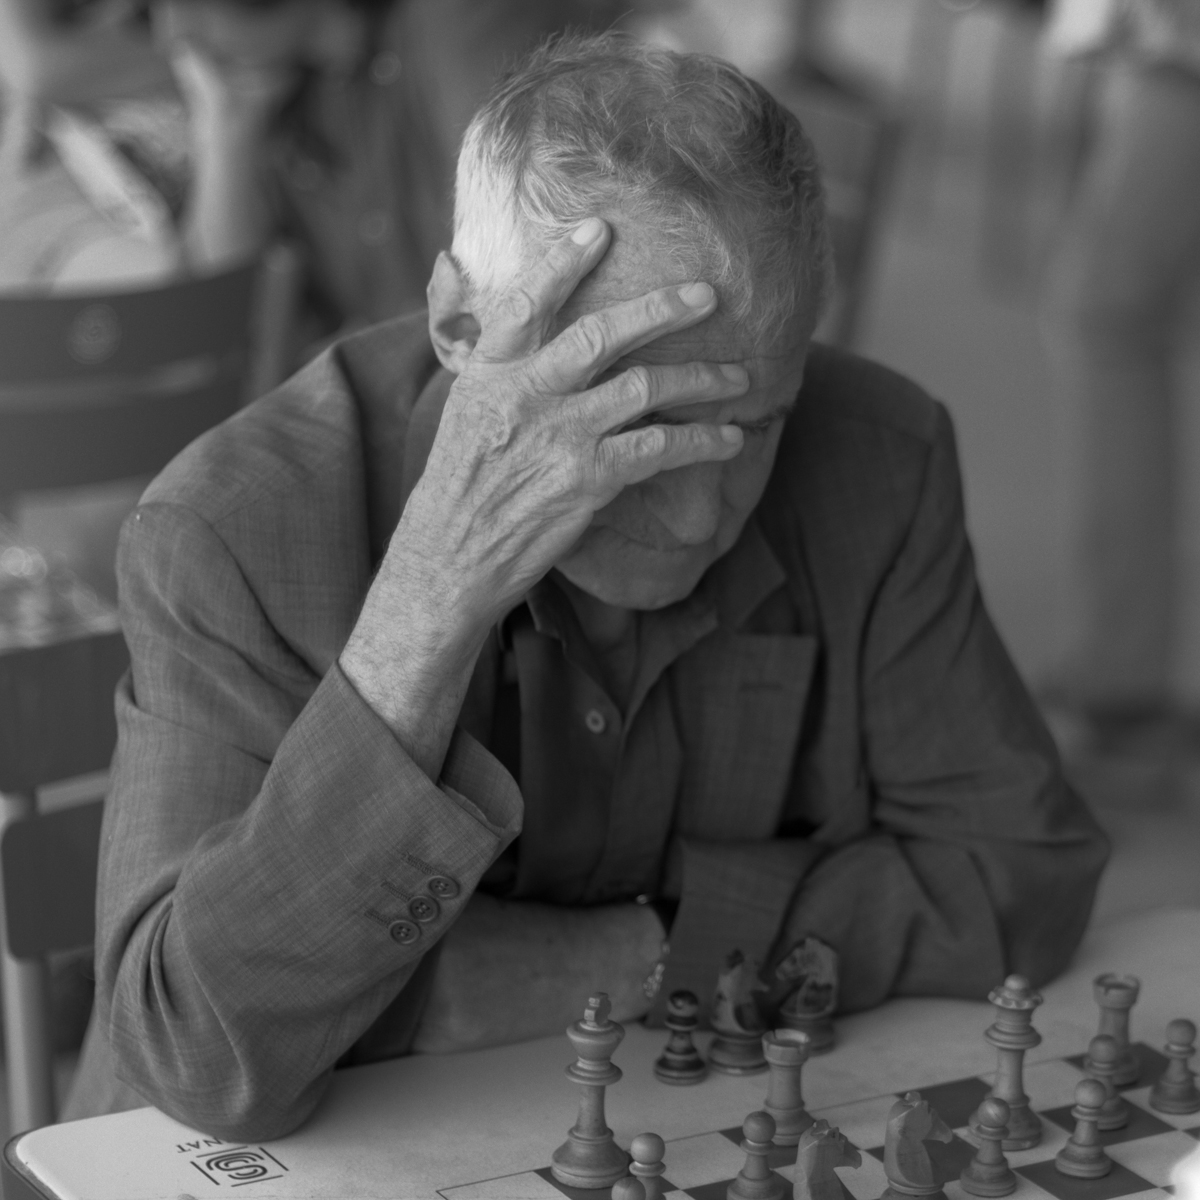 Jean philippe jouve black and white street photography paris the chess player